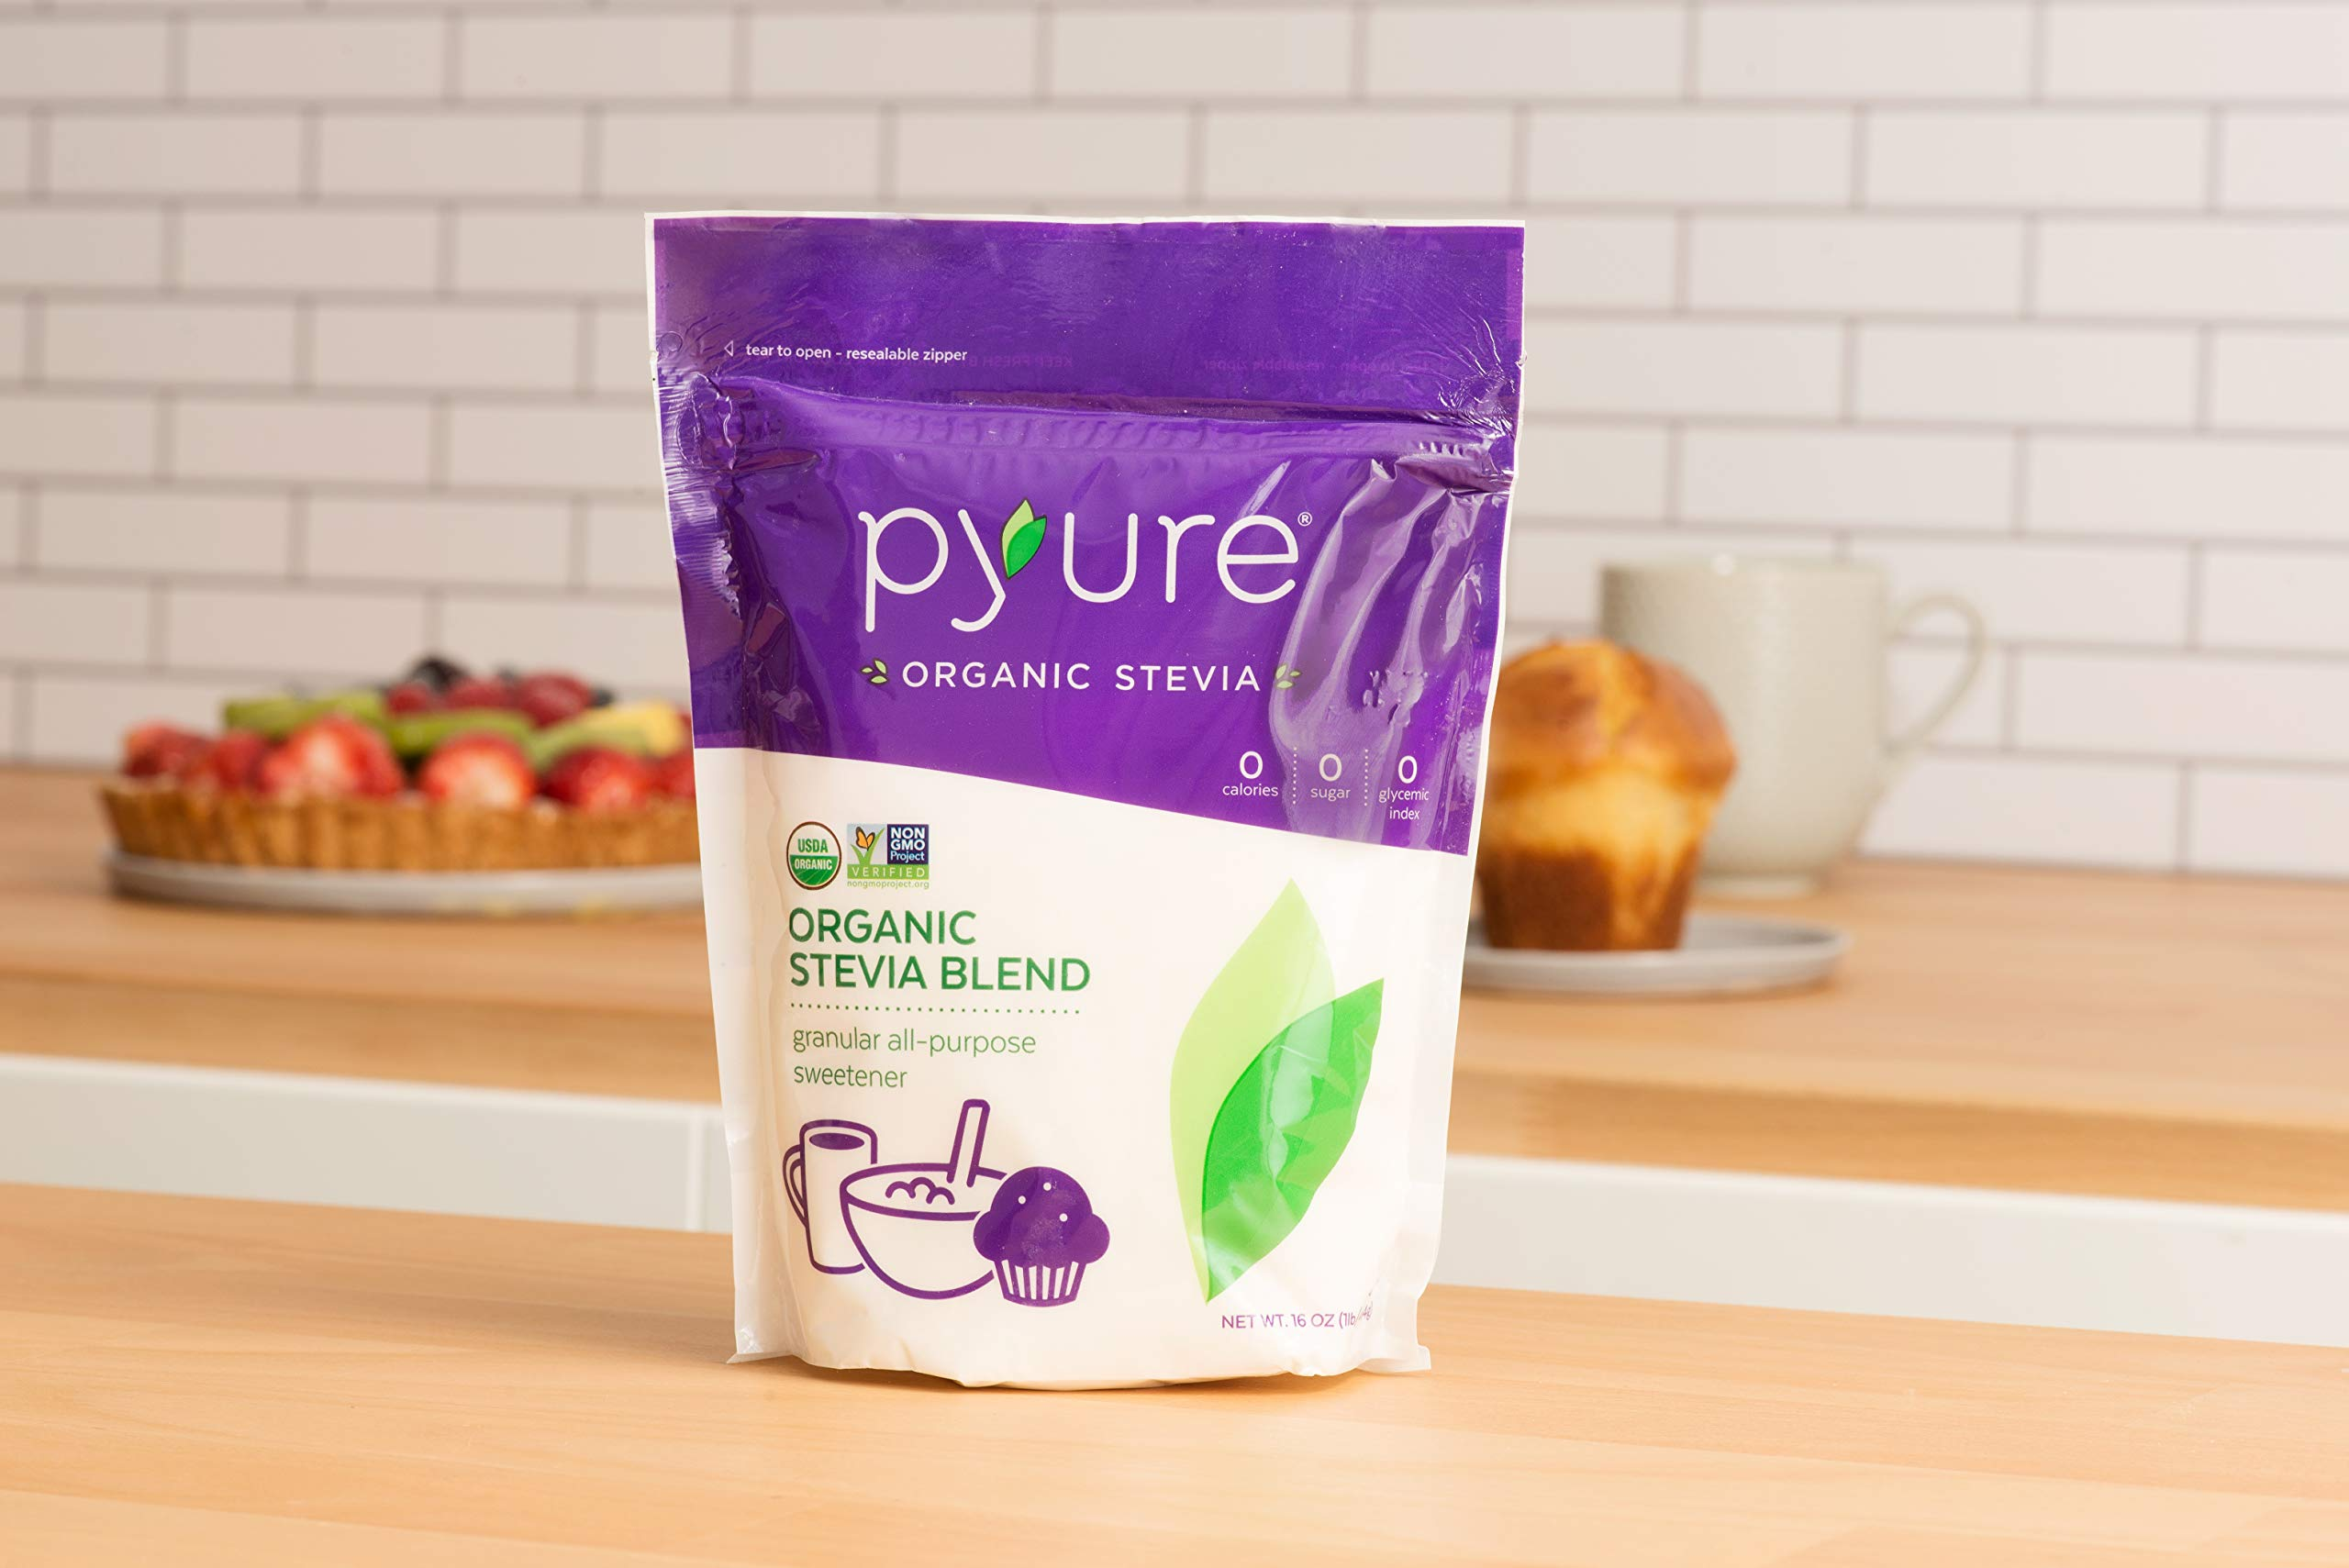 Pyure Organic All-Purpose Blend Stevia Sweetener, 1 lb (16 oz) by Pyure (Image #7)